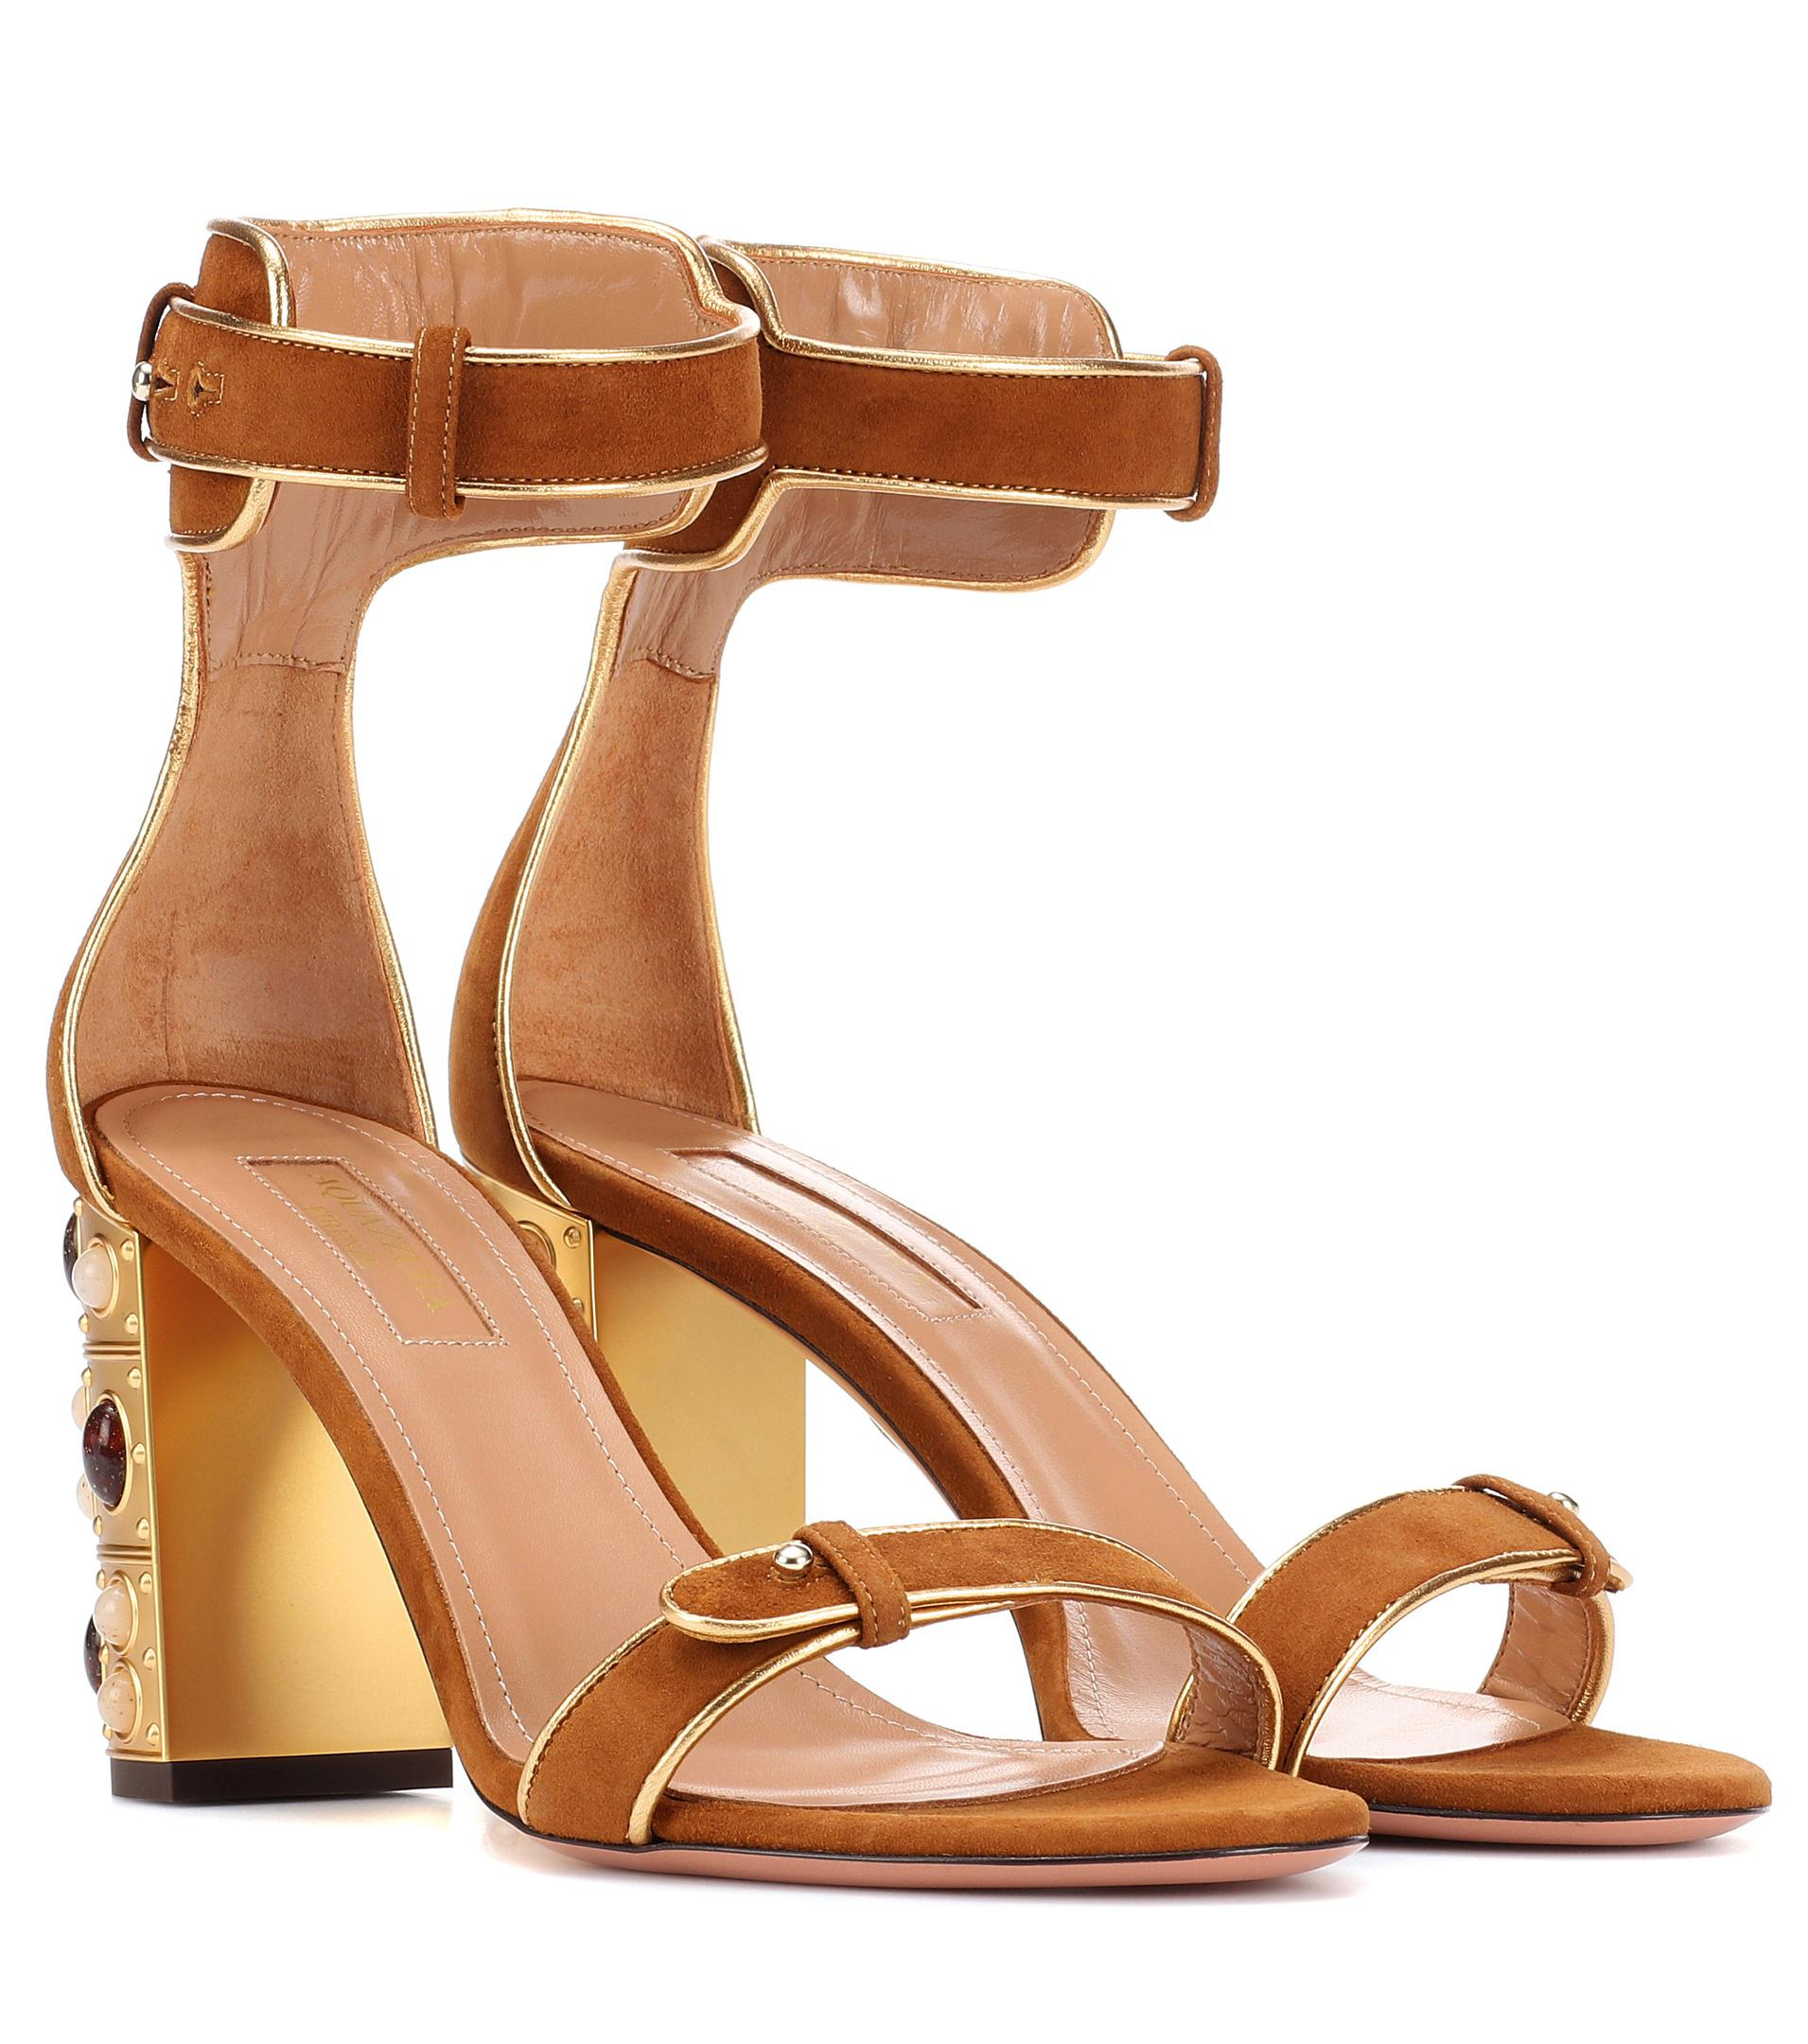 Aquazzura Lucky Star 85 suede pumps Big Sale For Sale Discount 100% Guaranteed Visit Cheap Price Free Shipping Store Cheap Sale Huge Surprise 8BgsJU9TEQ